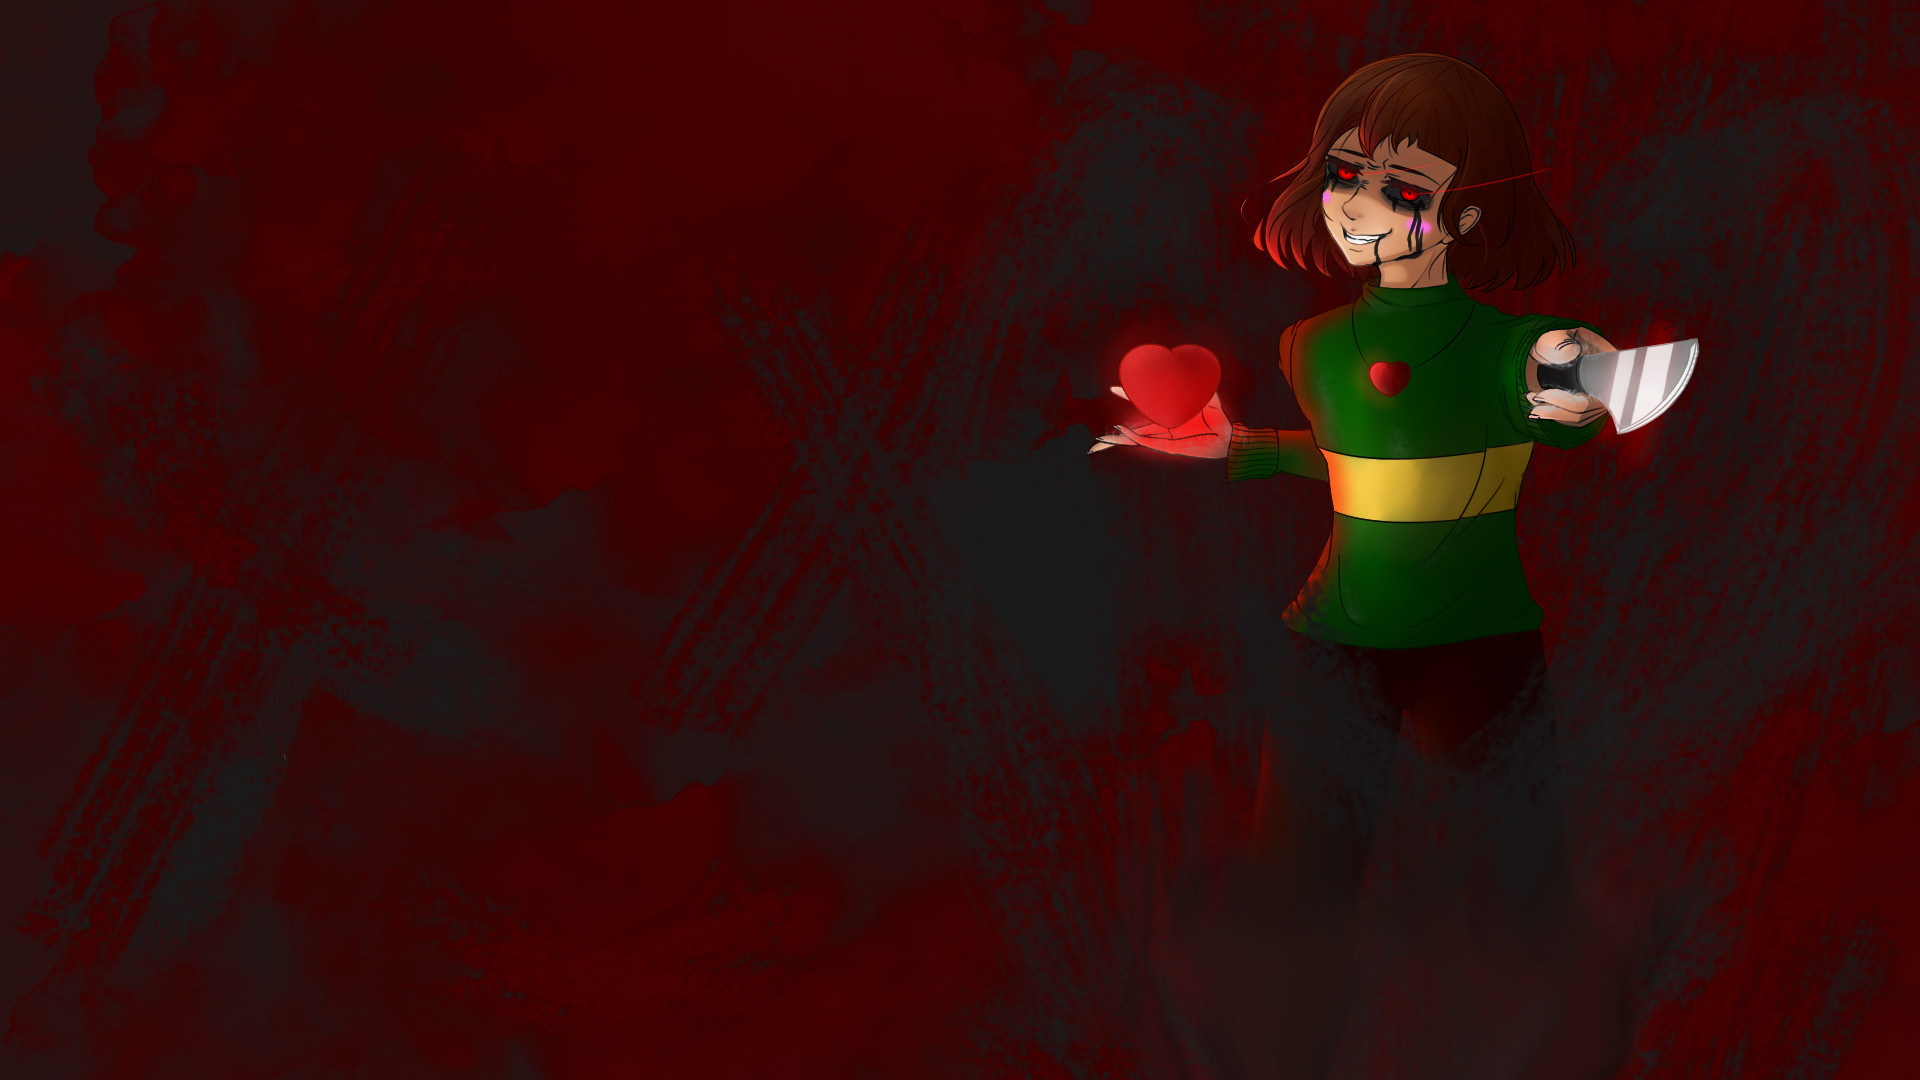 … Chara – The World is Fading (Undertale Wallpaper) by DigitalCold